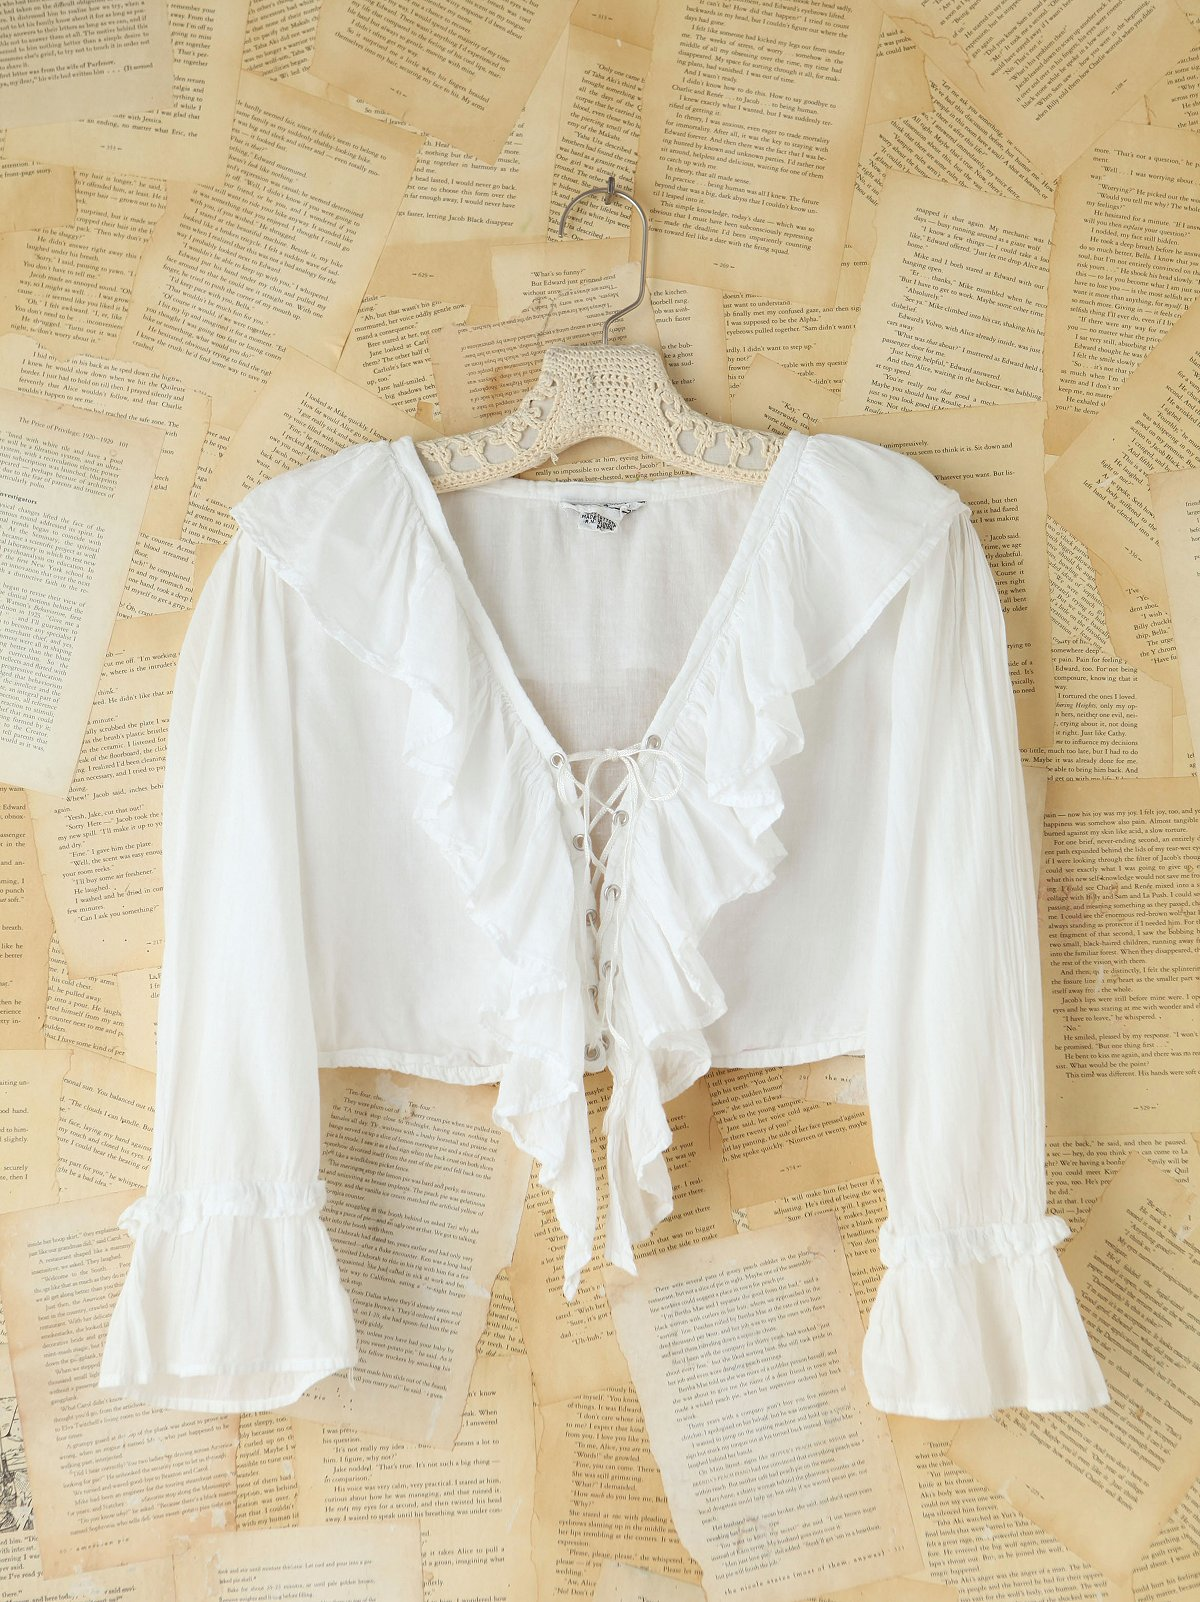 Vintage 1950s Cotton Crop Top